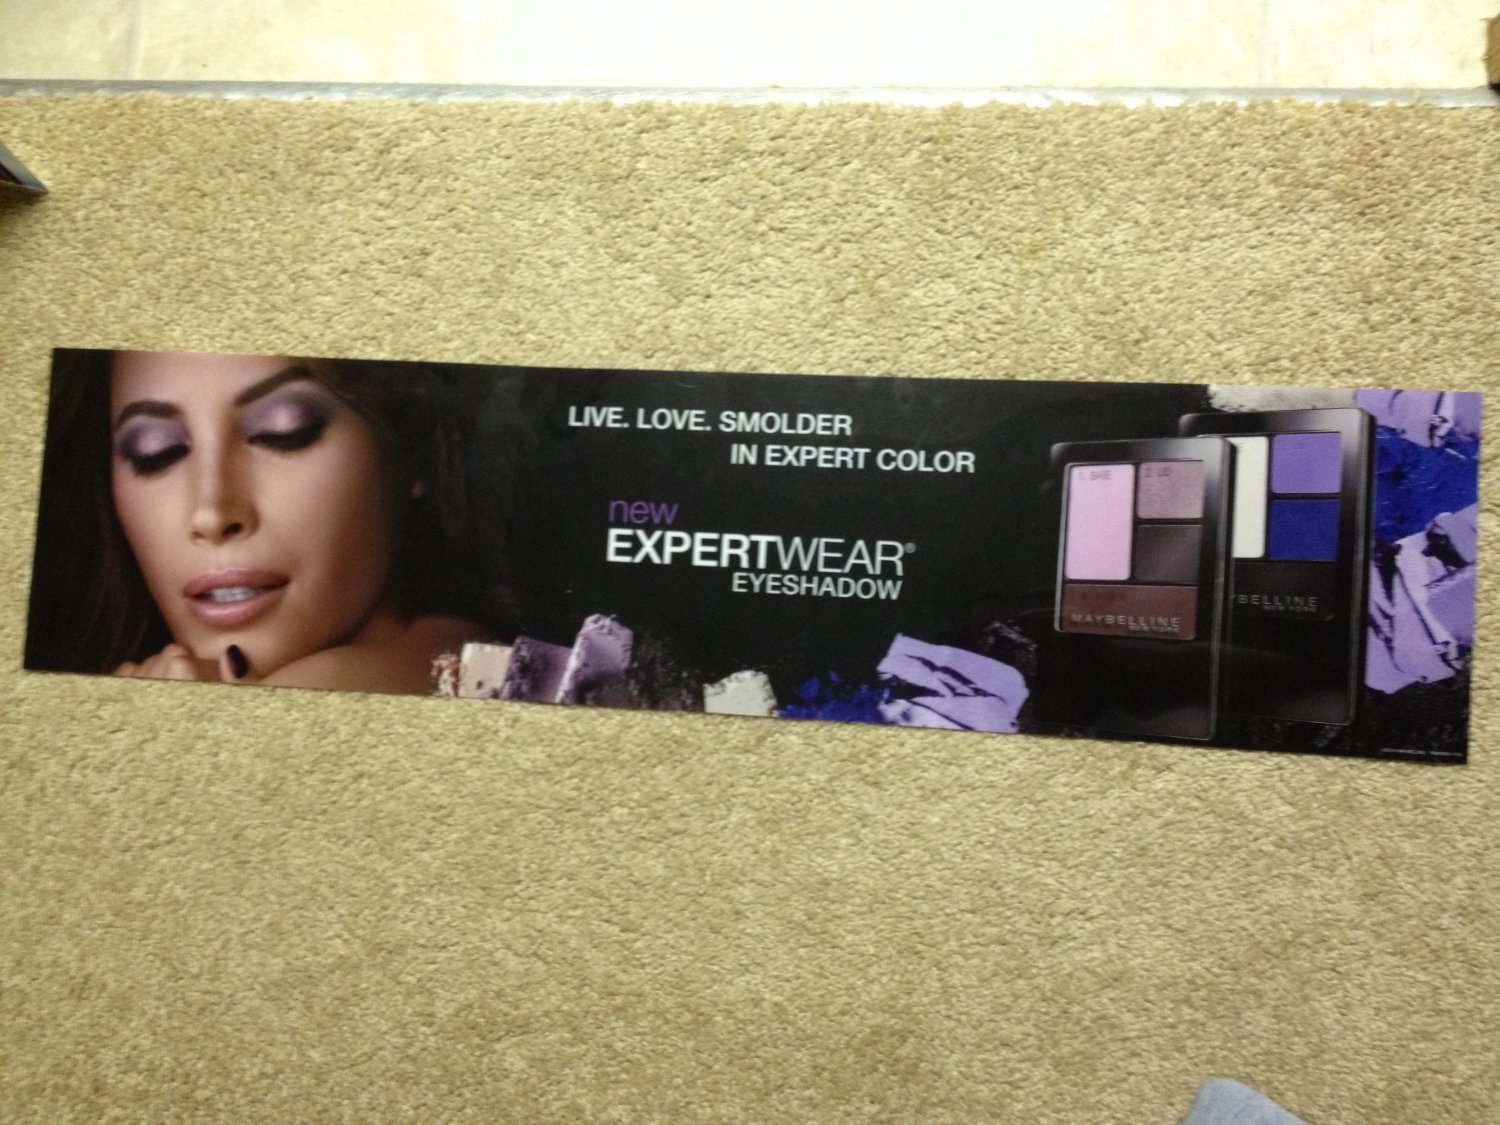 Maybelline ExpertWear Eyeshadow eye shadow Product Display Poster